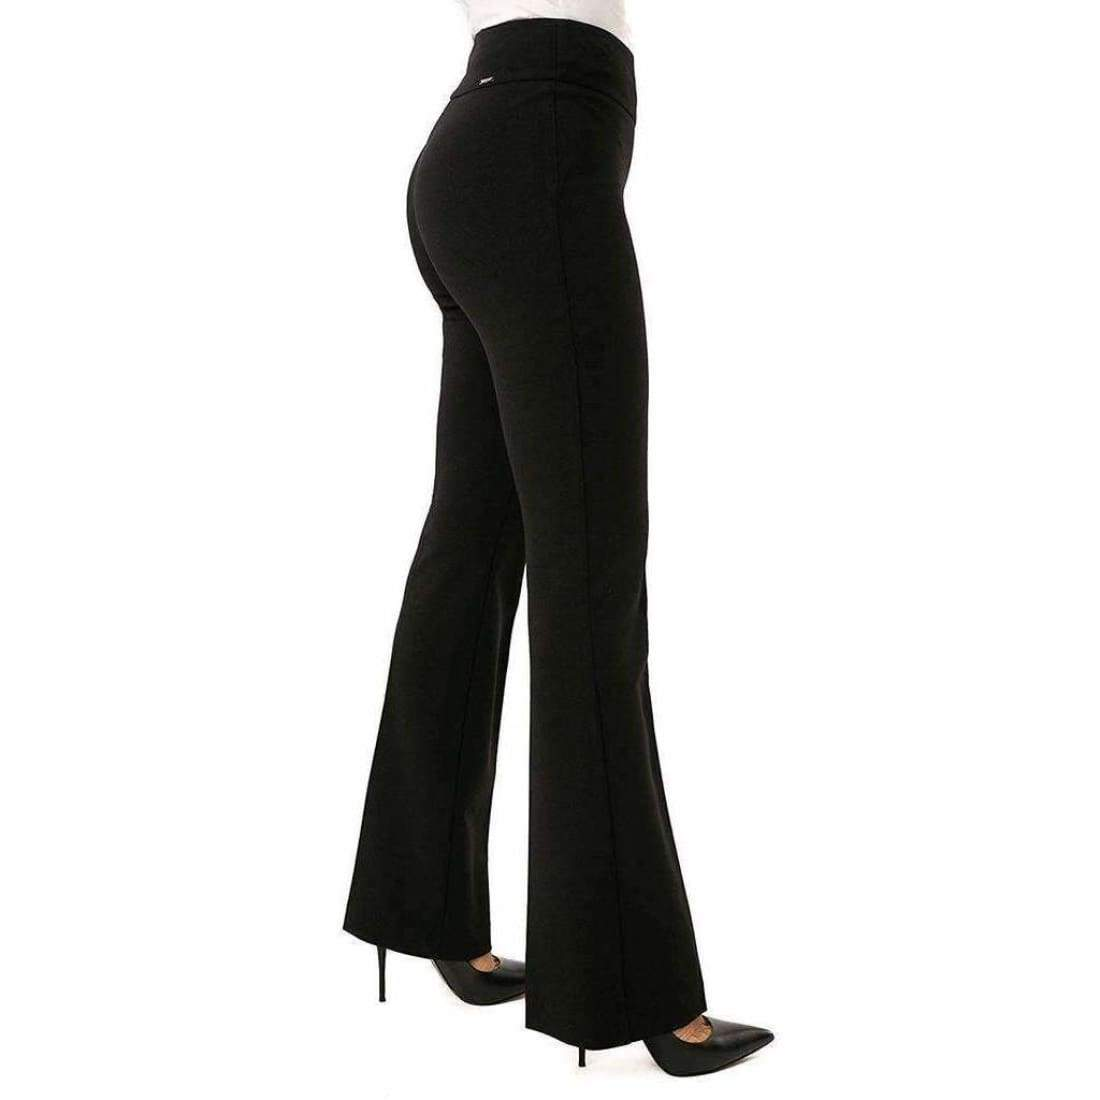 Up! Womens Boot Stretch Crepe Pants Flatten And Flatter Style 65249 Color Black 8 Pants